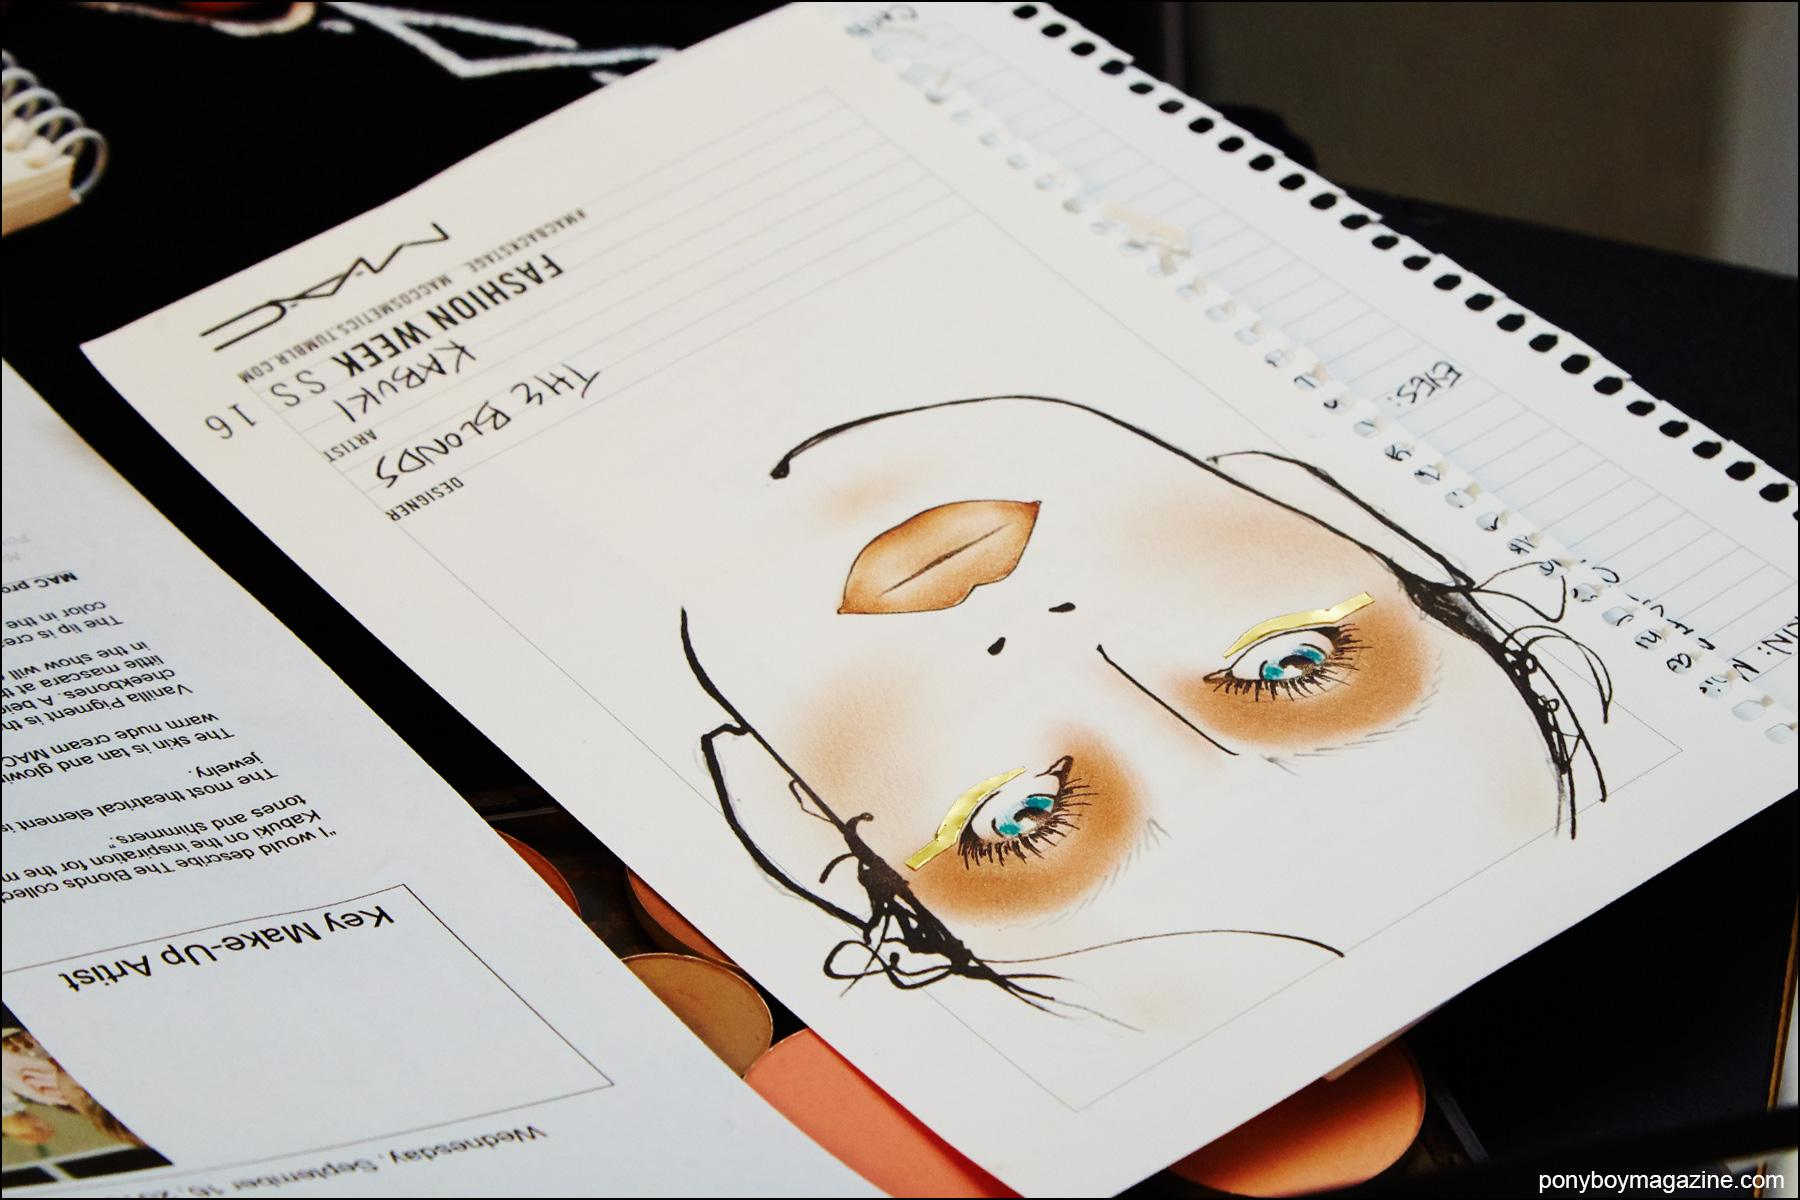 MAC makeup illustration for the Blonds S/S16, photographed backstage by Alexander Thompson for Ponyboy magazine NY.